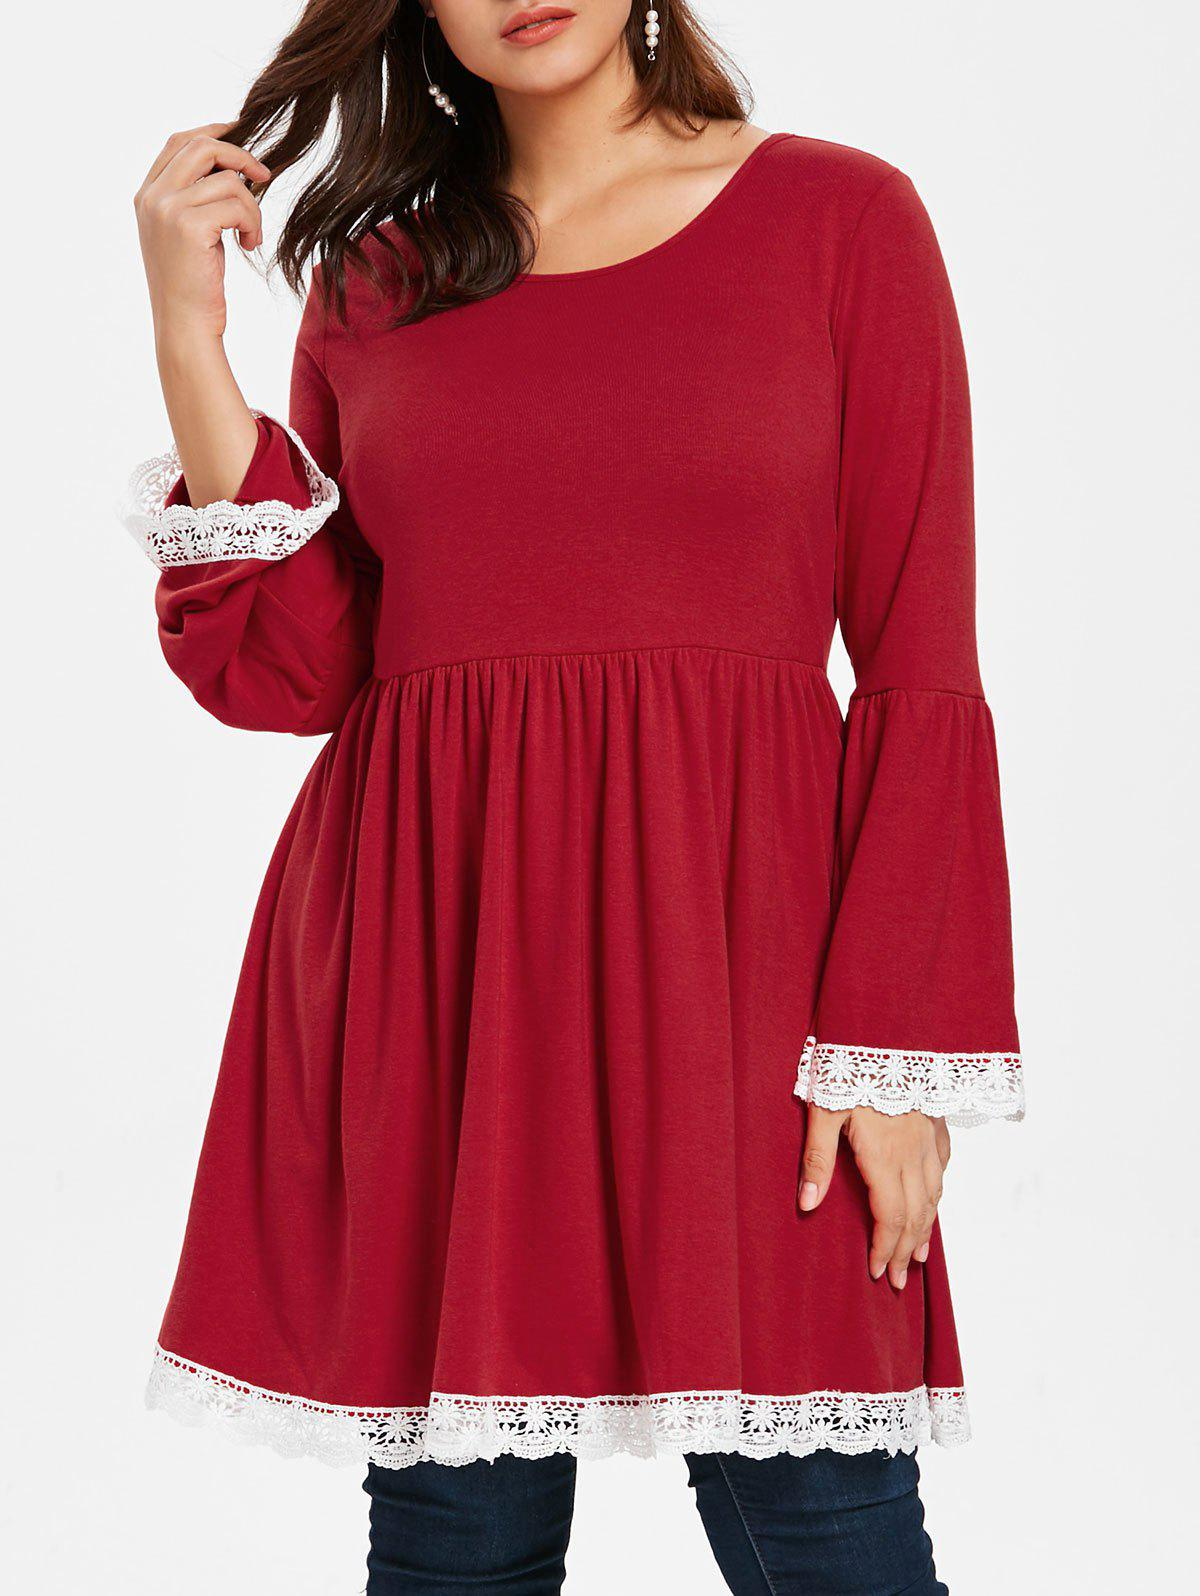 Plus Size Flare Sleeve Lace Trim Peplum Tee - RED WINE 4X